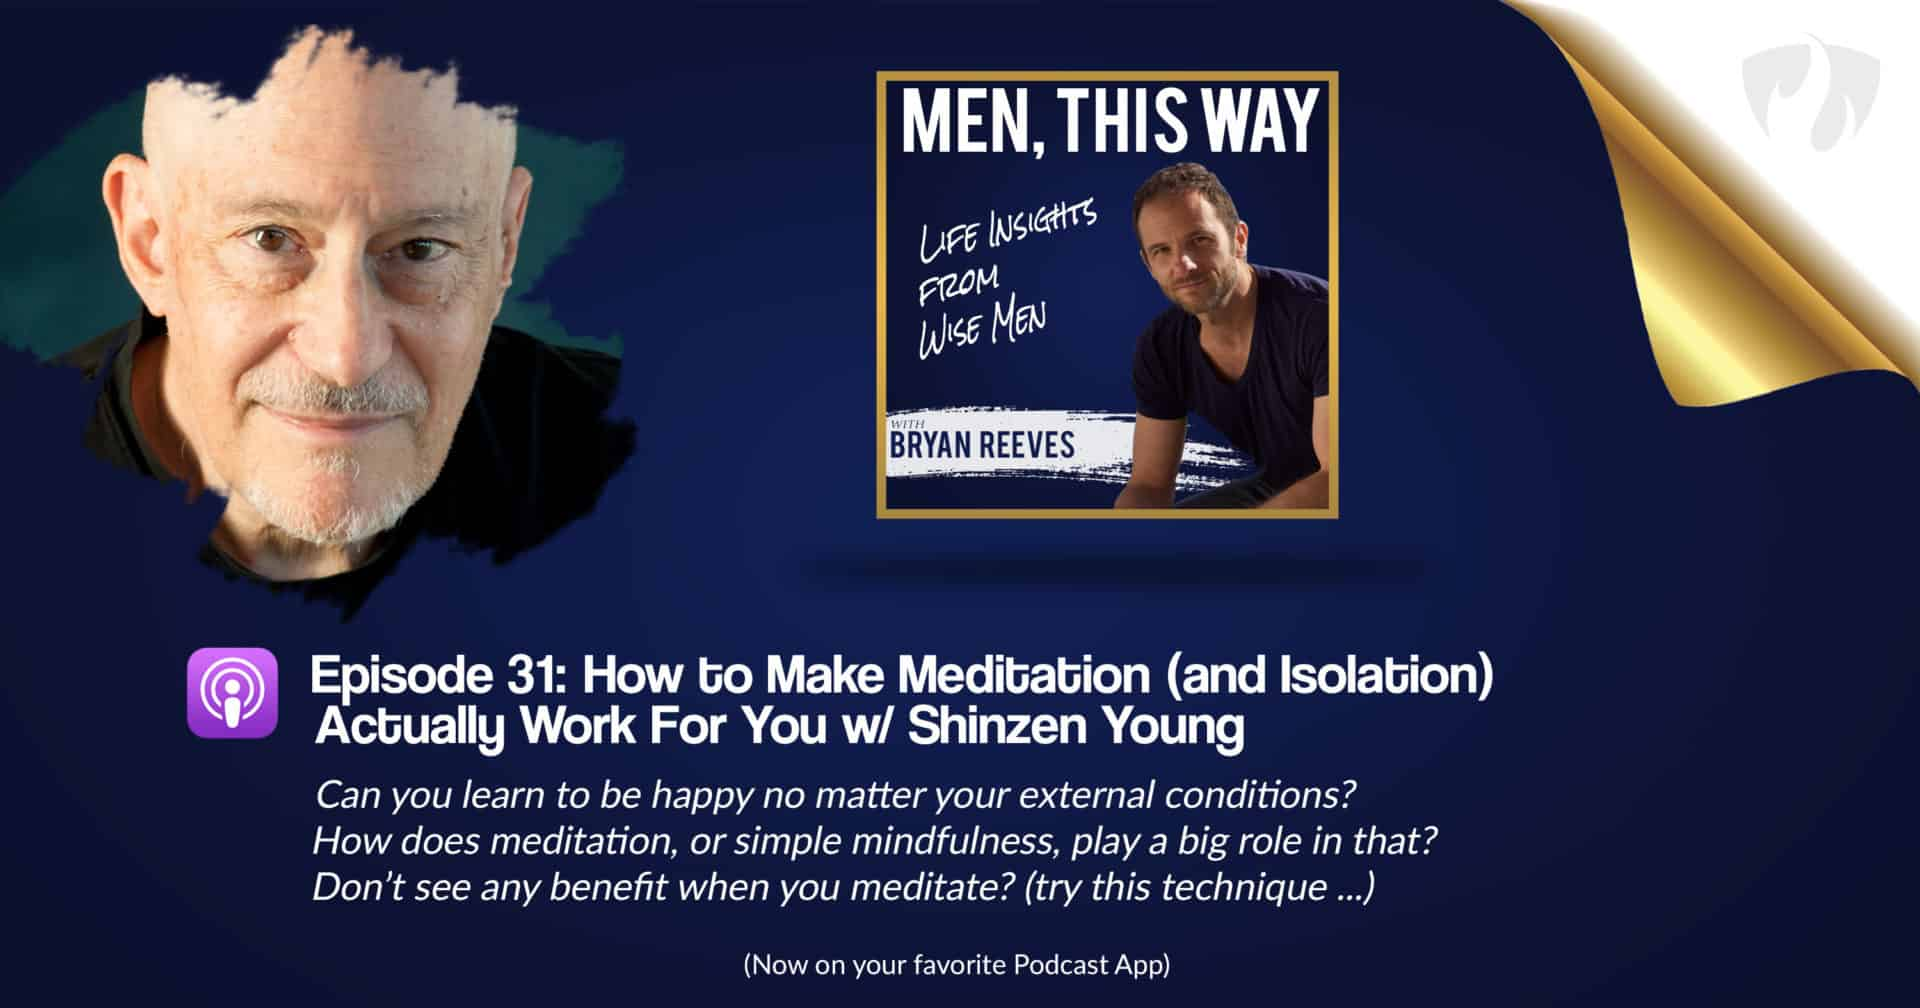 MTW GUEST Shinzen Young